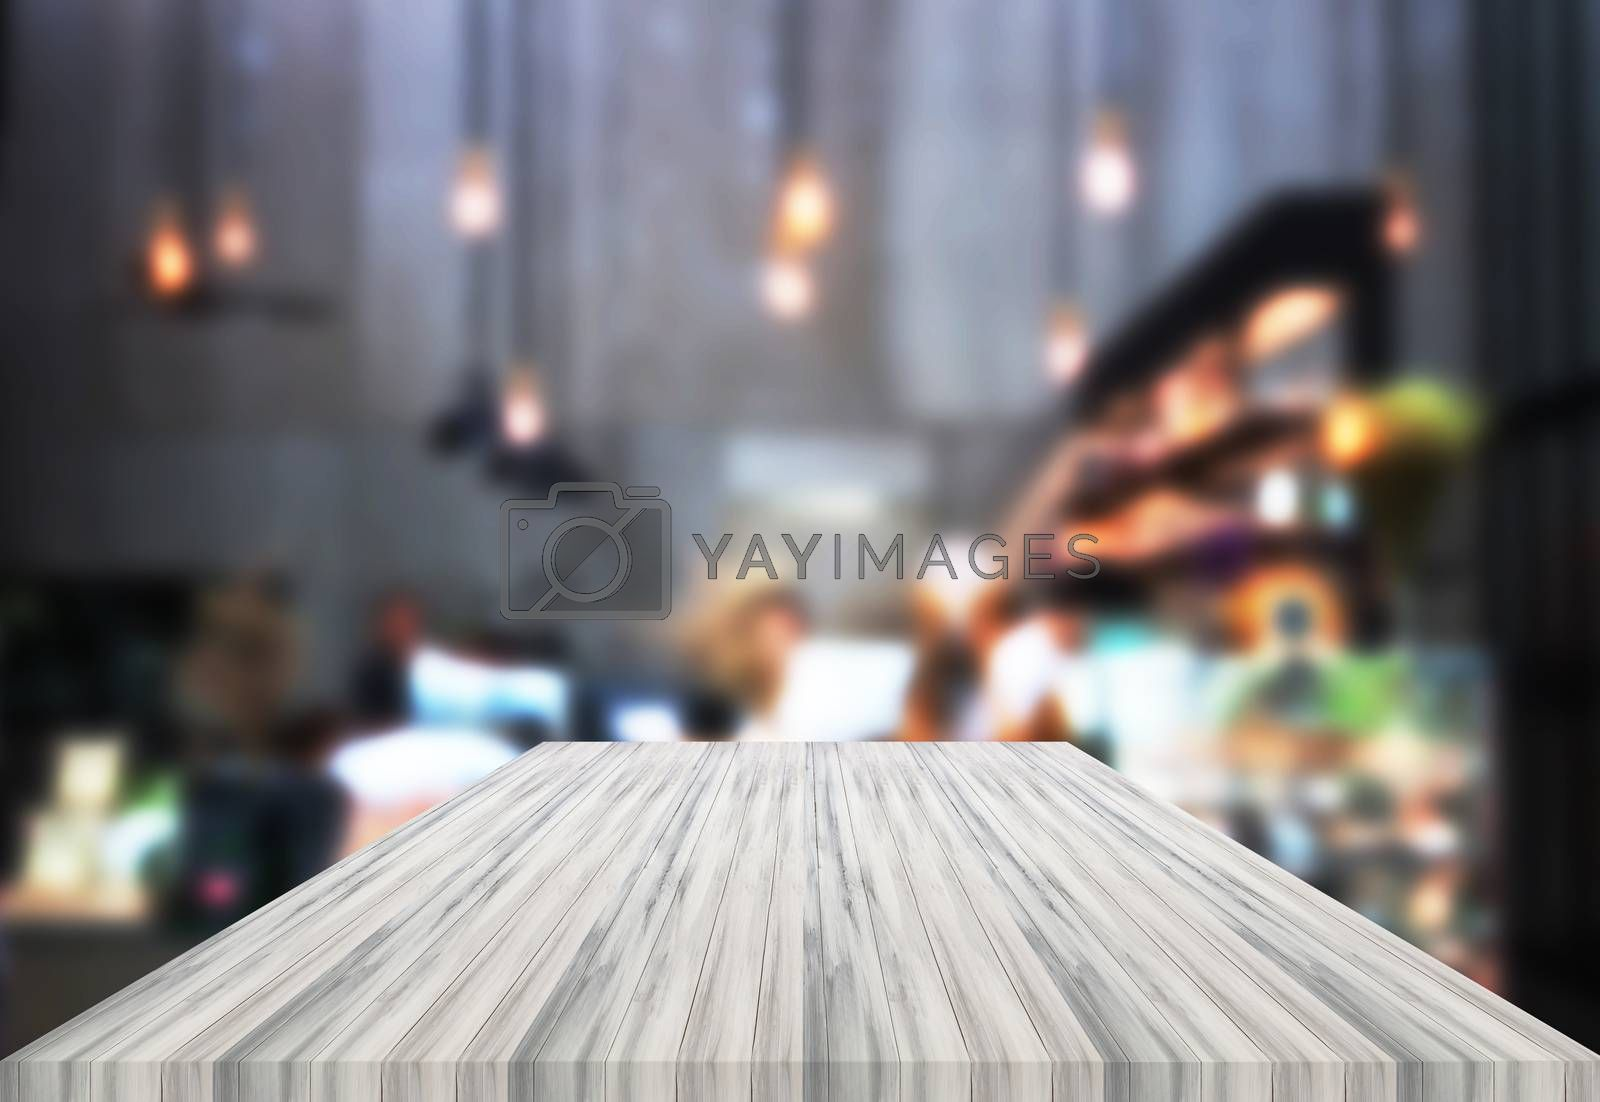 Luxury white table top wooden with blurred background. product display template